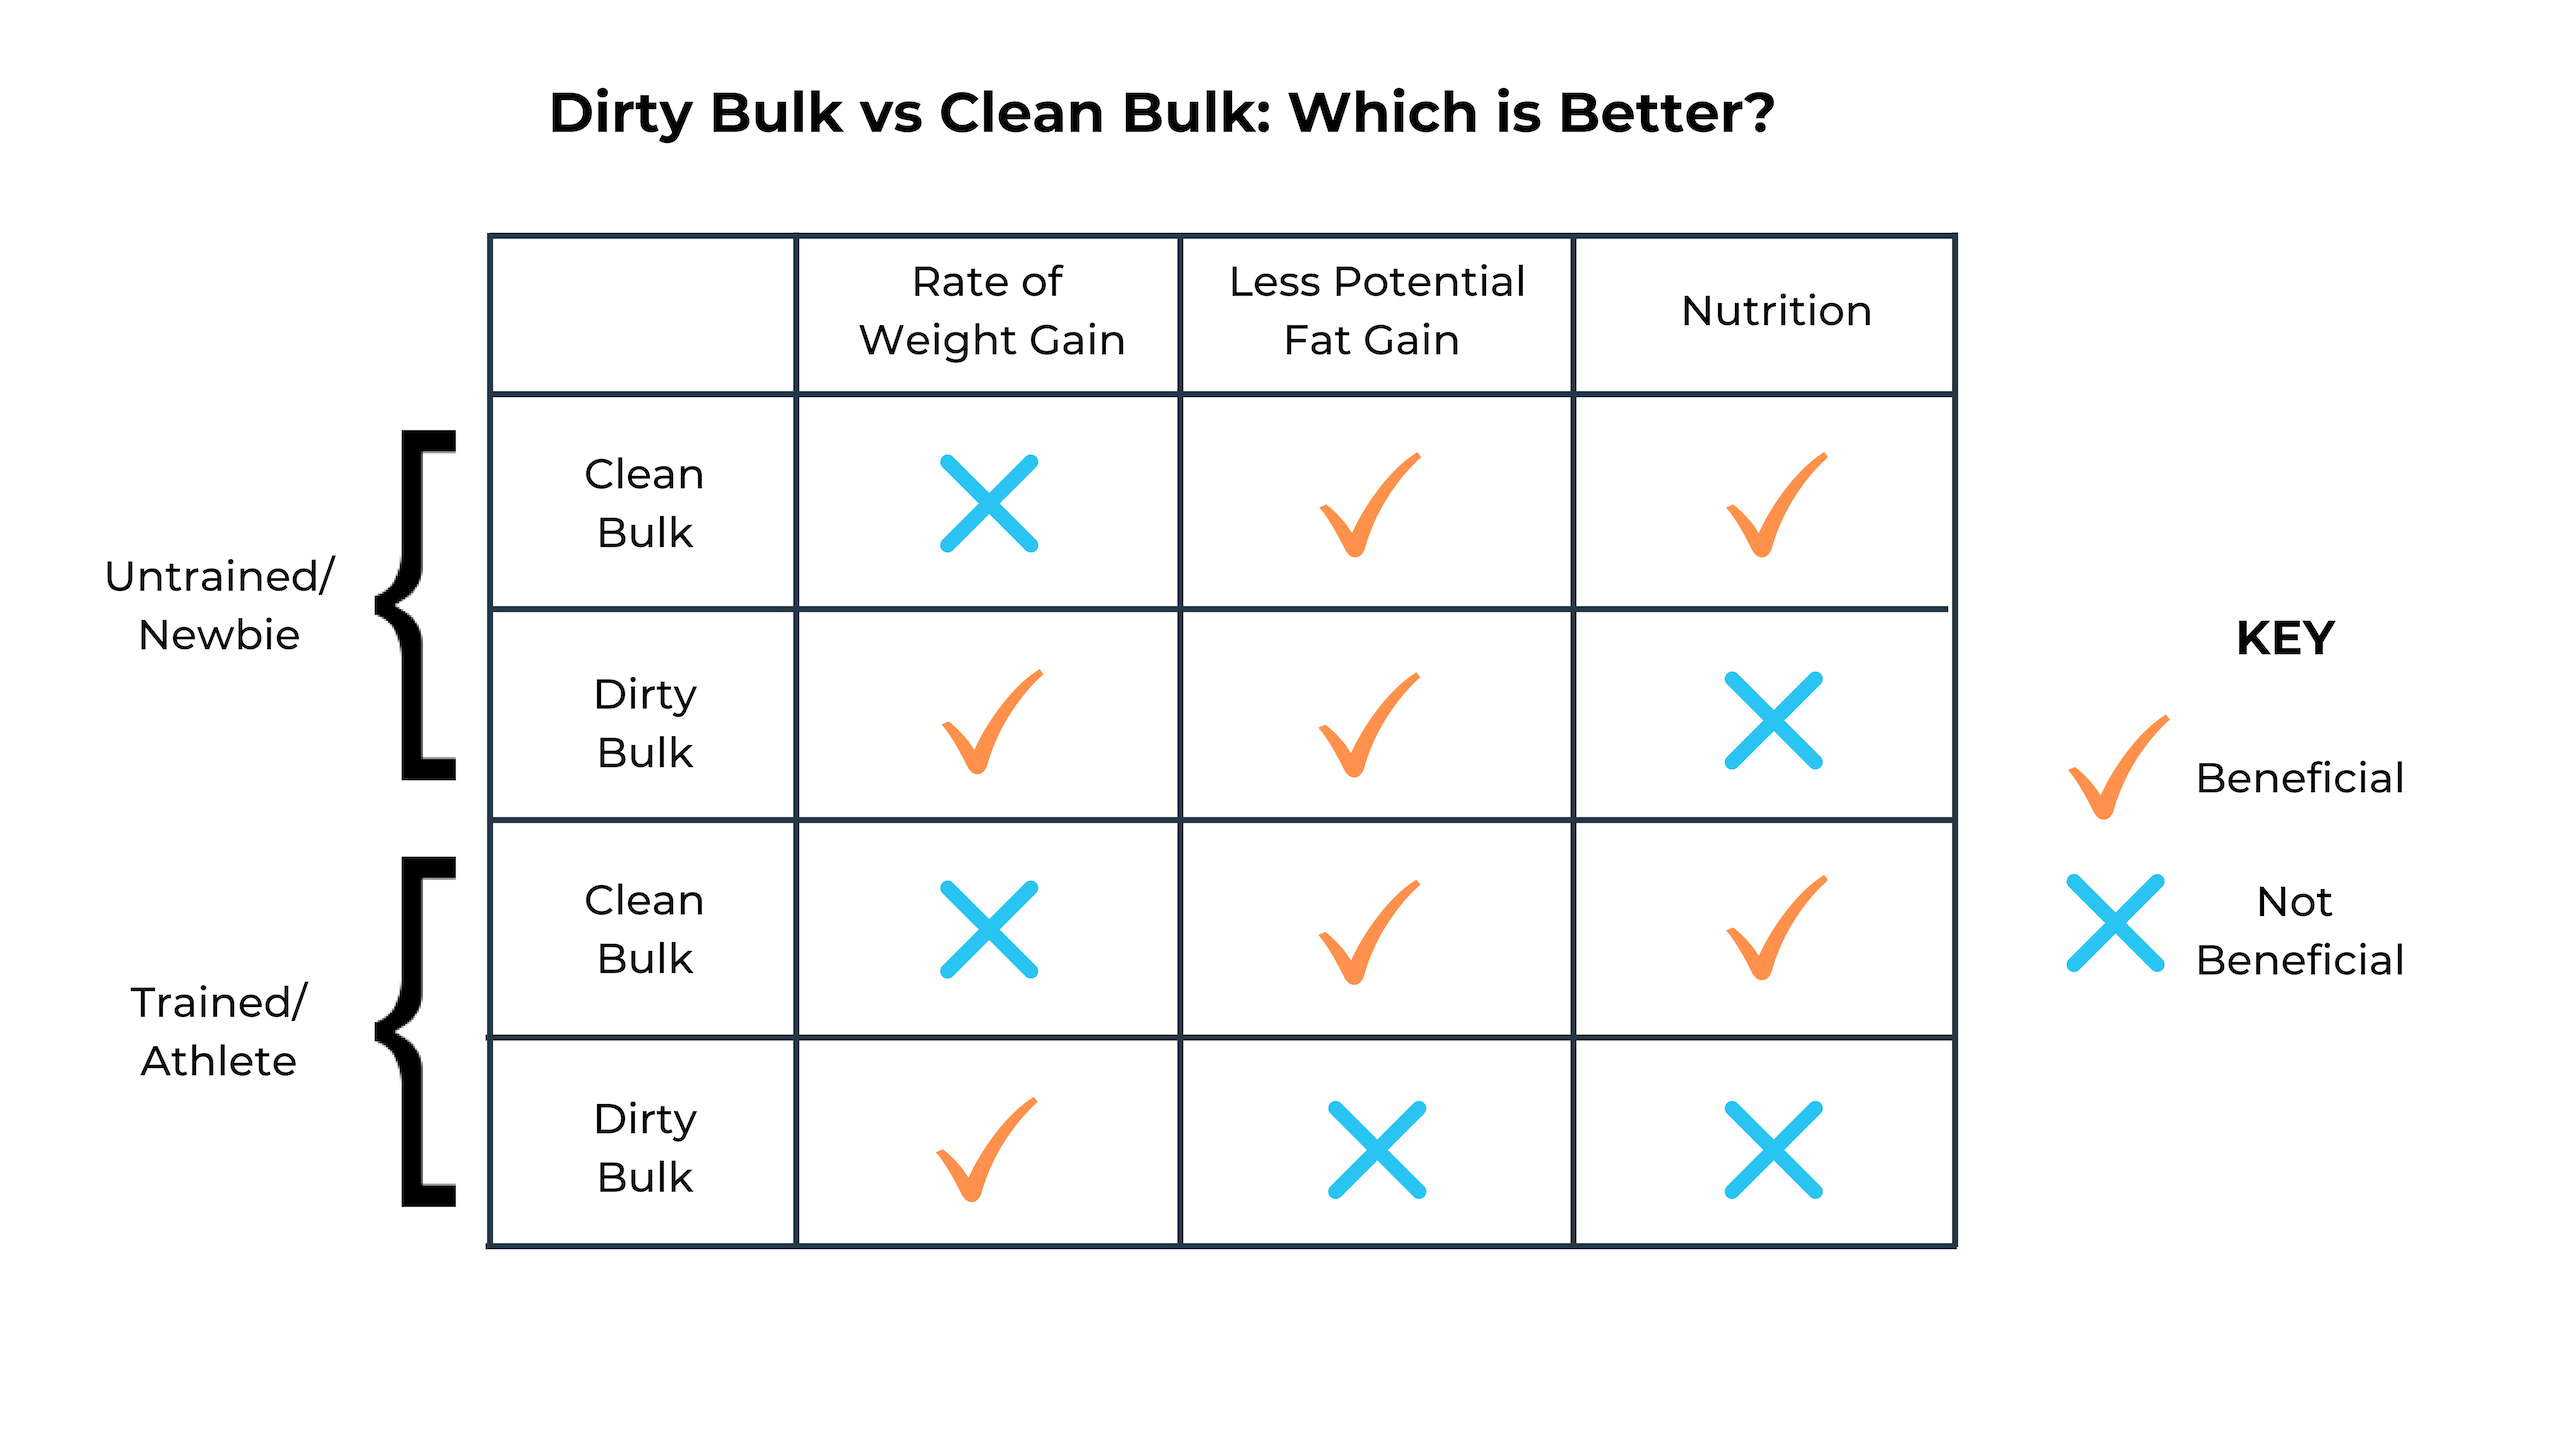 Dirty Bulk vs Clean Bulk (1)